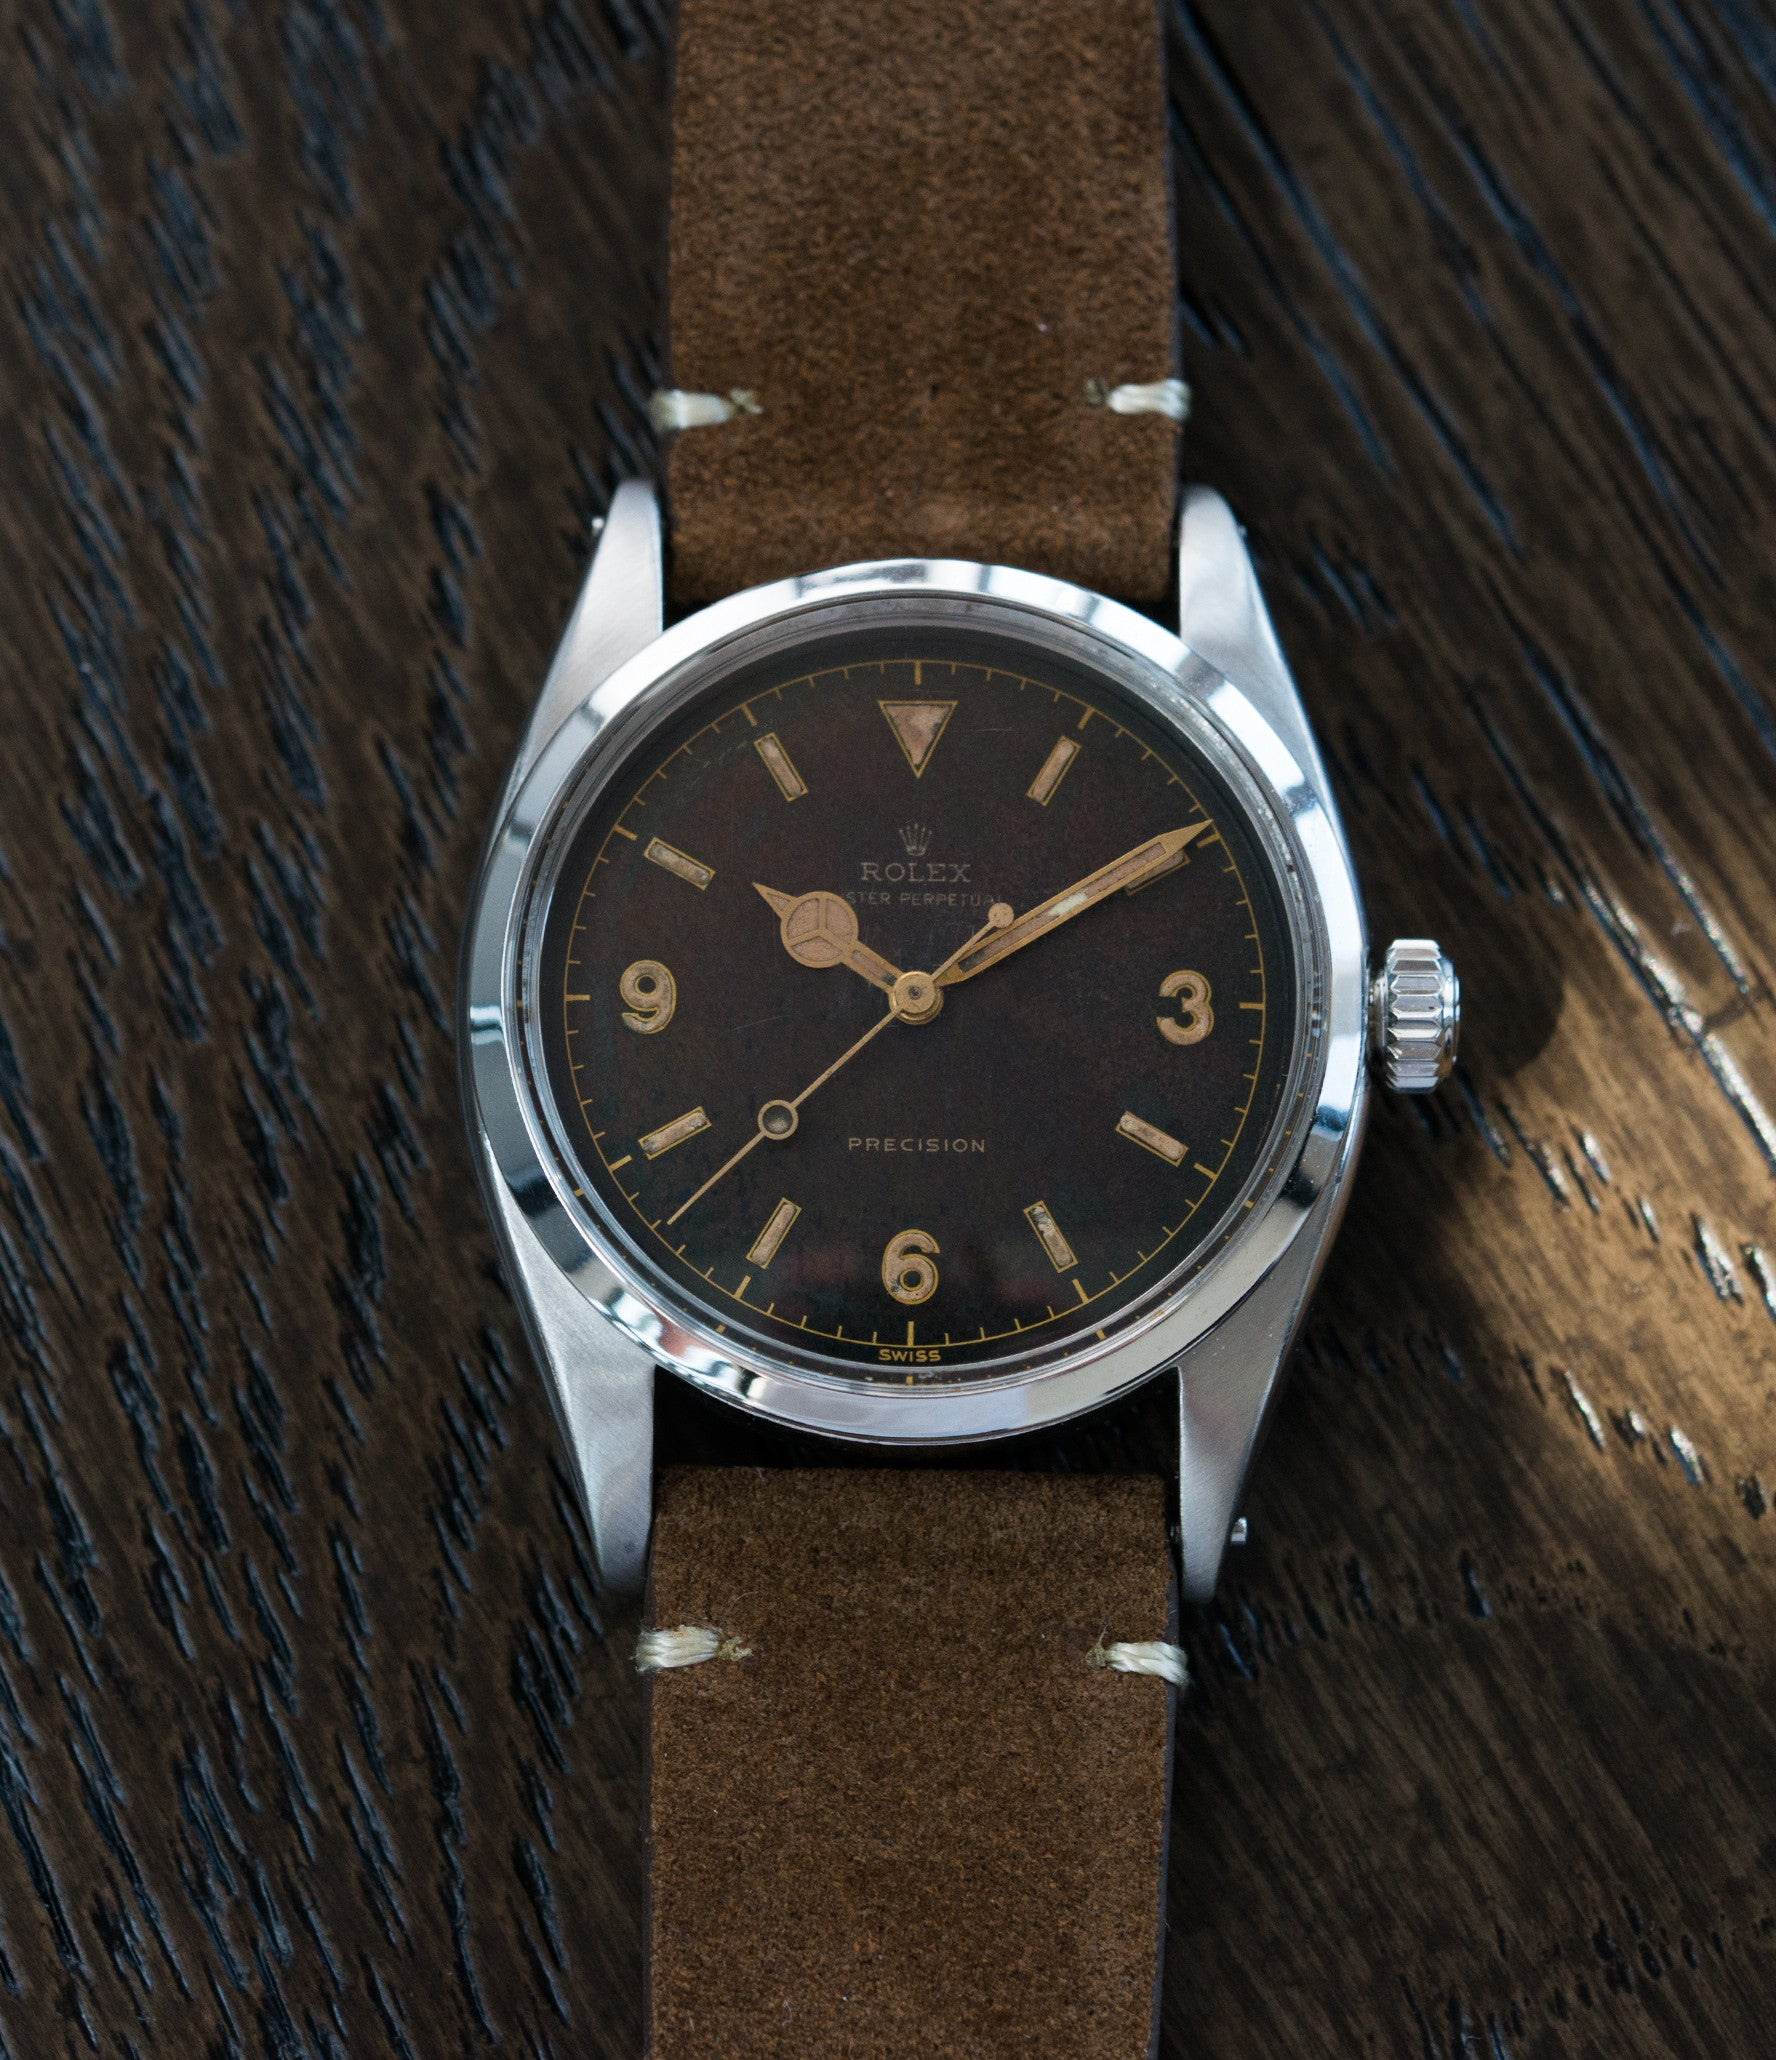 selling vintage Rolex 6150 Precision Pre-Explorer steel sport watch automatic A296 for sale online at A Collected Man vintage watch specialist